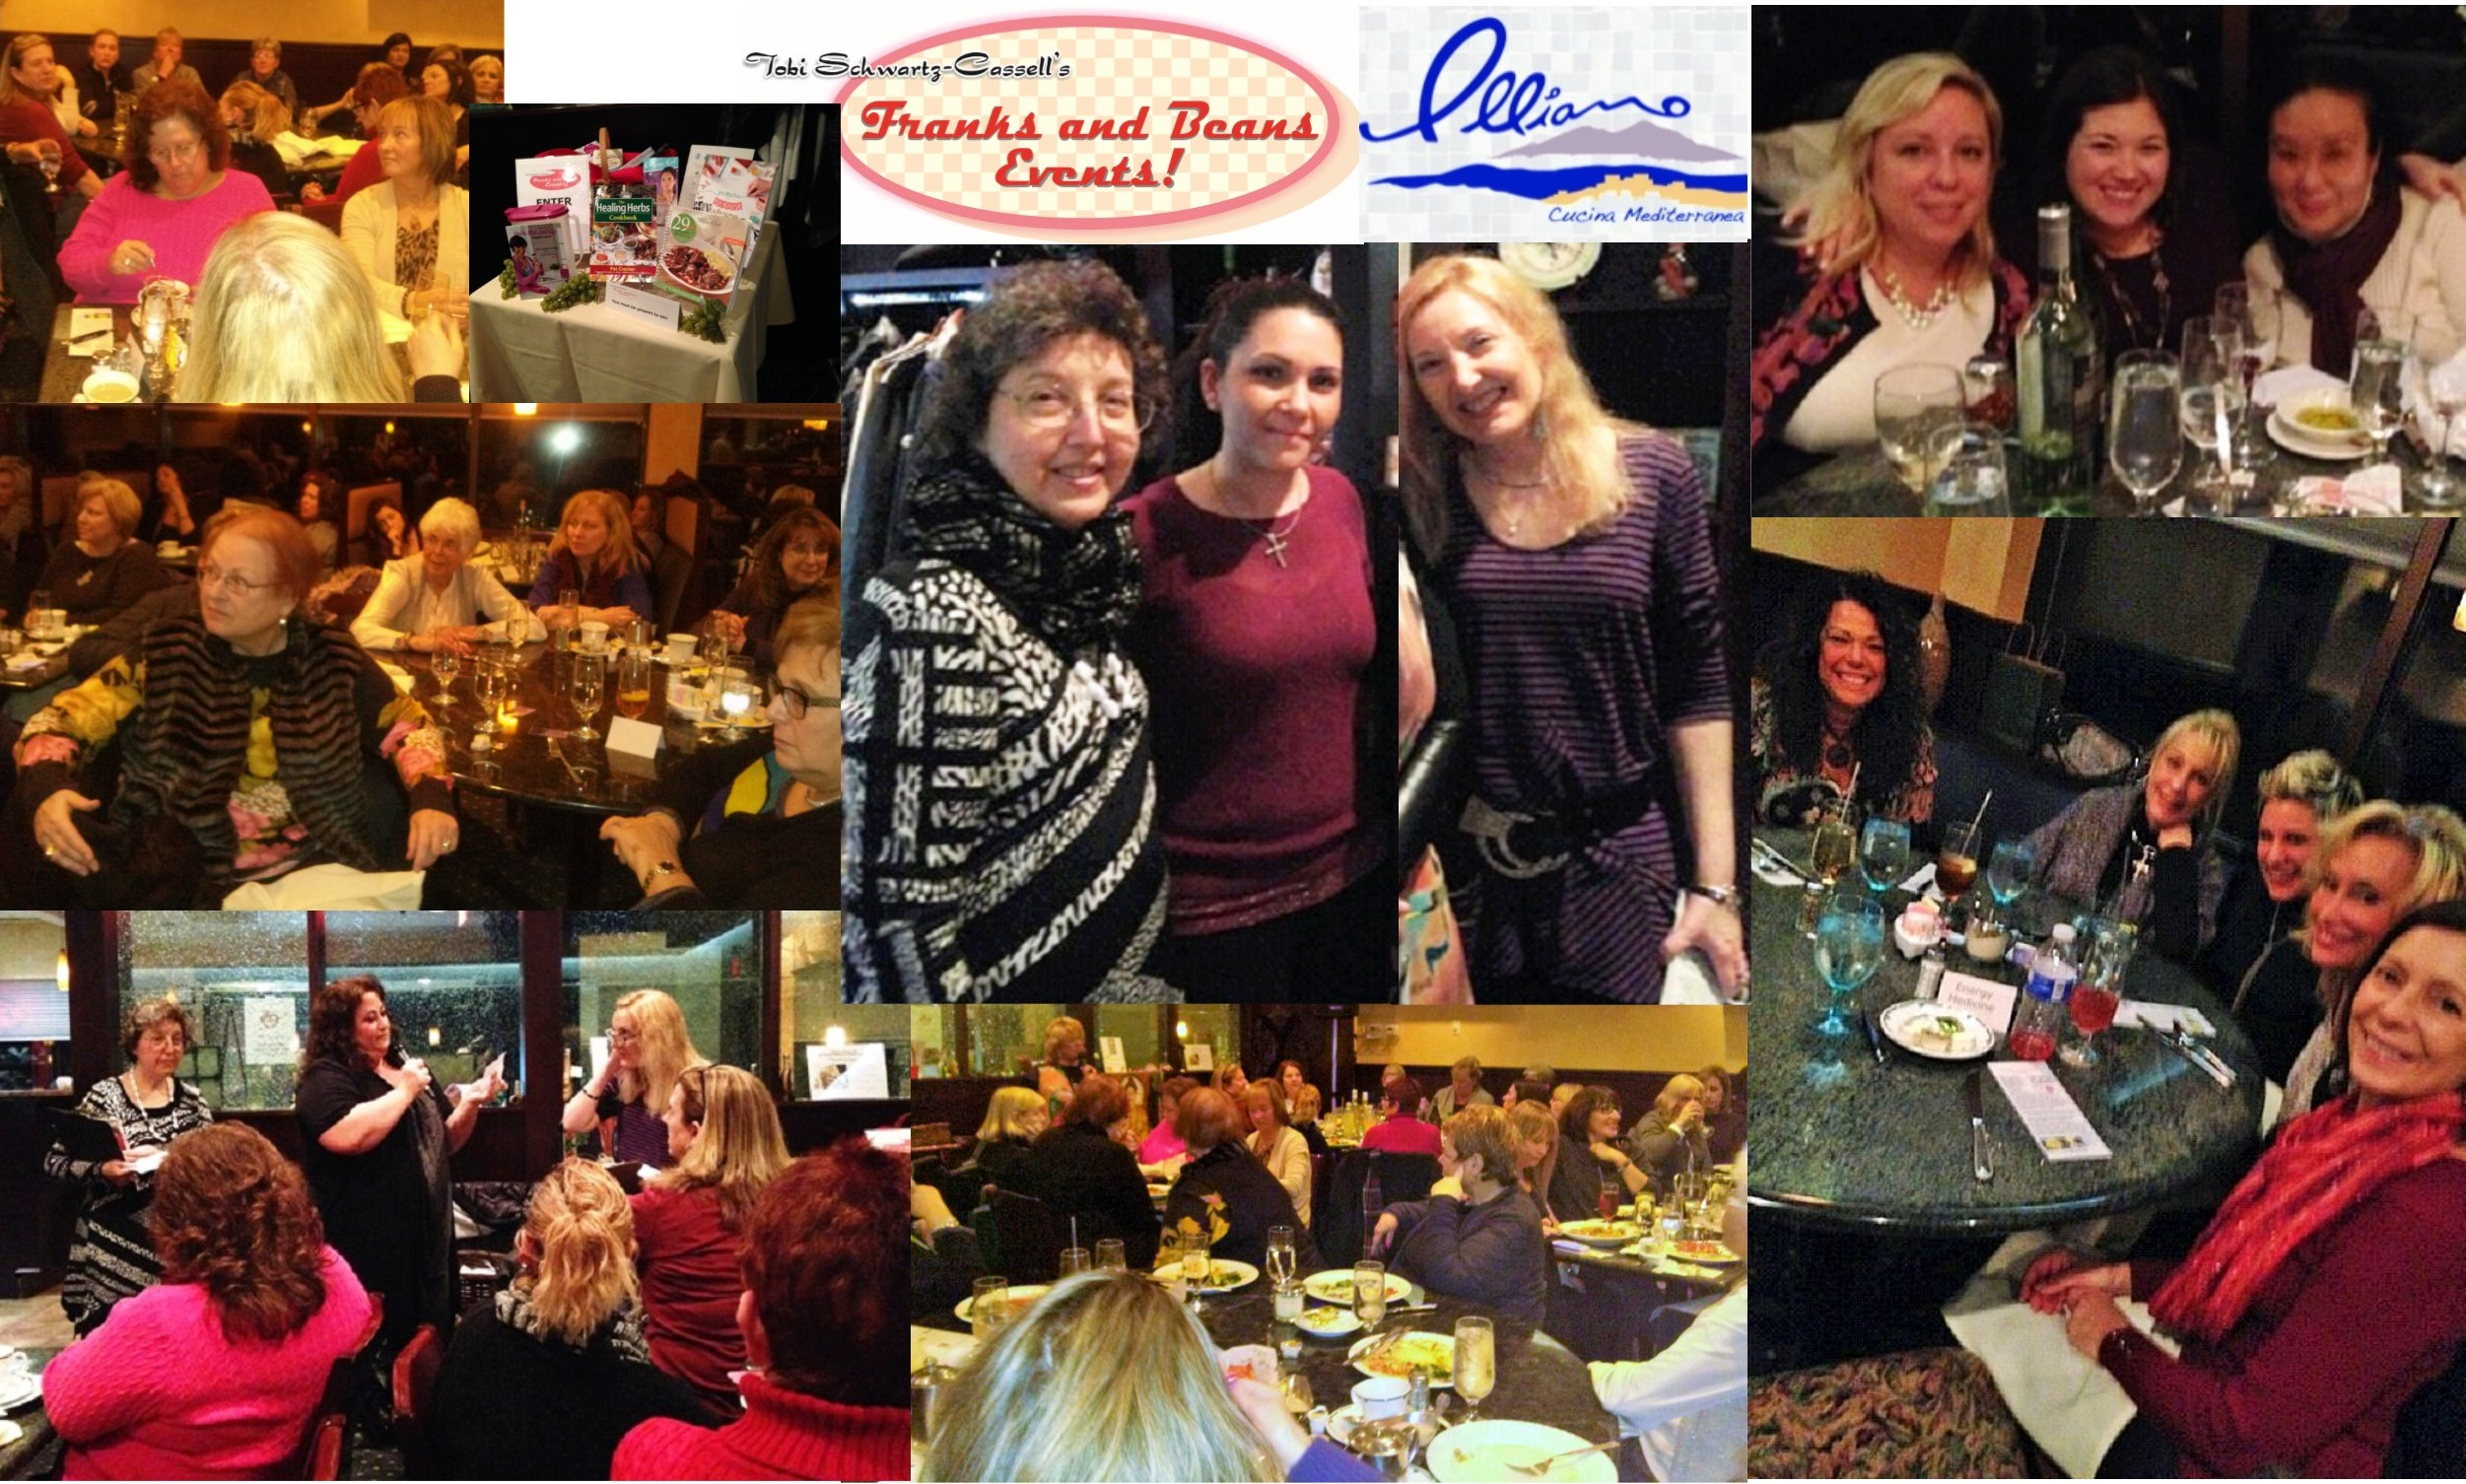 It was another fun Franks & Beans' Psychic Dinner at Illiano's in Medford.